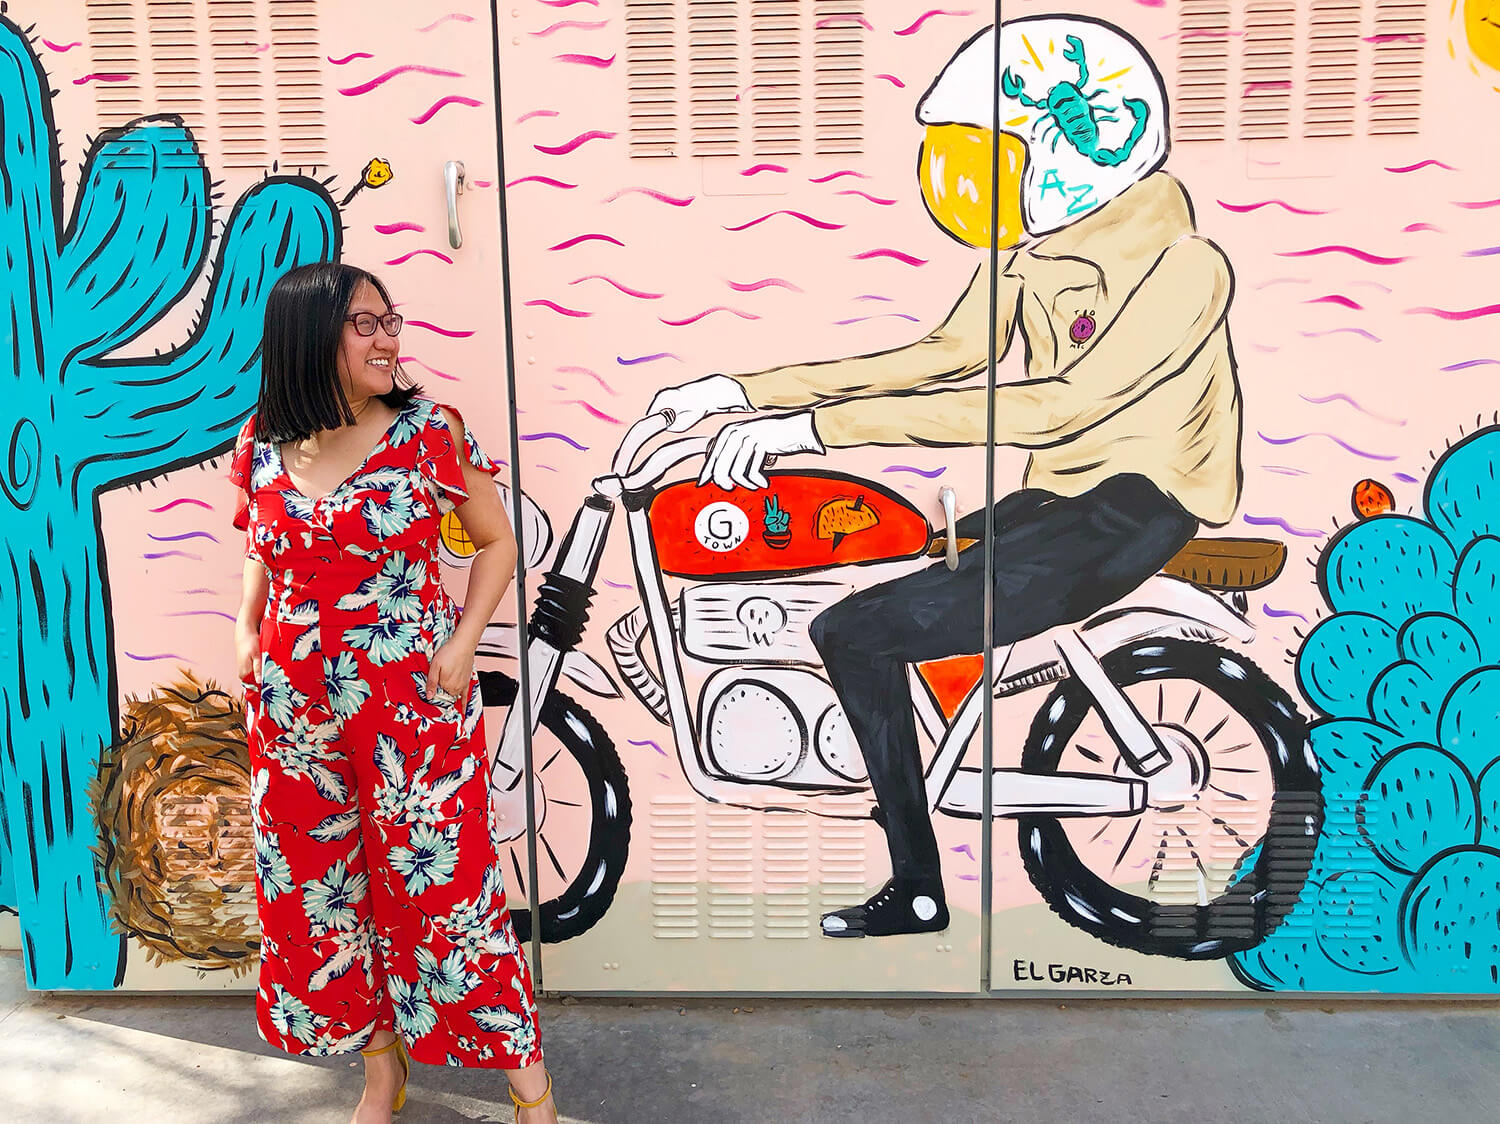 Instagrammable Walls of Mesa Arizona Murals Travel Visit Mesa